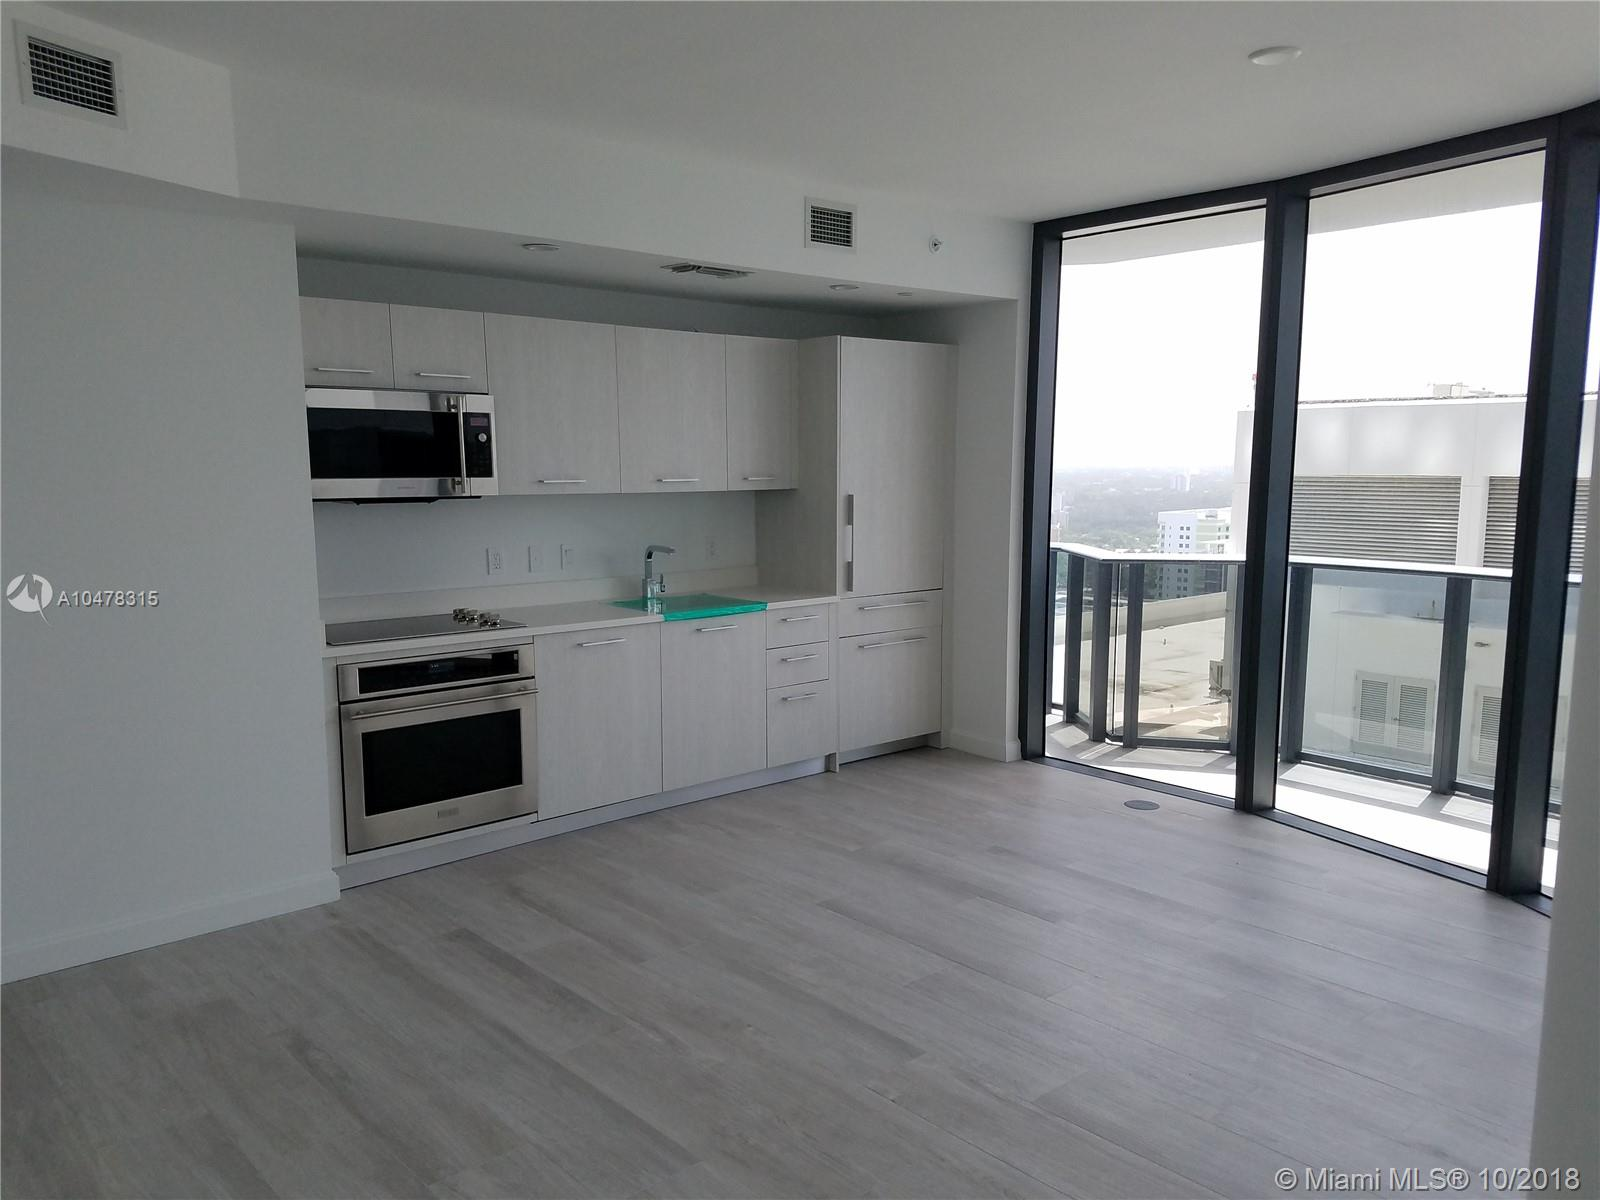 55 SW 9th St, Miami, FL 33130, Brickell Heights West Tower #3108, Brickell, Miami A10478315 image #3